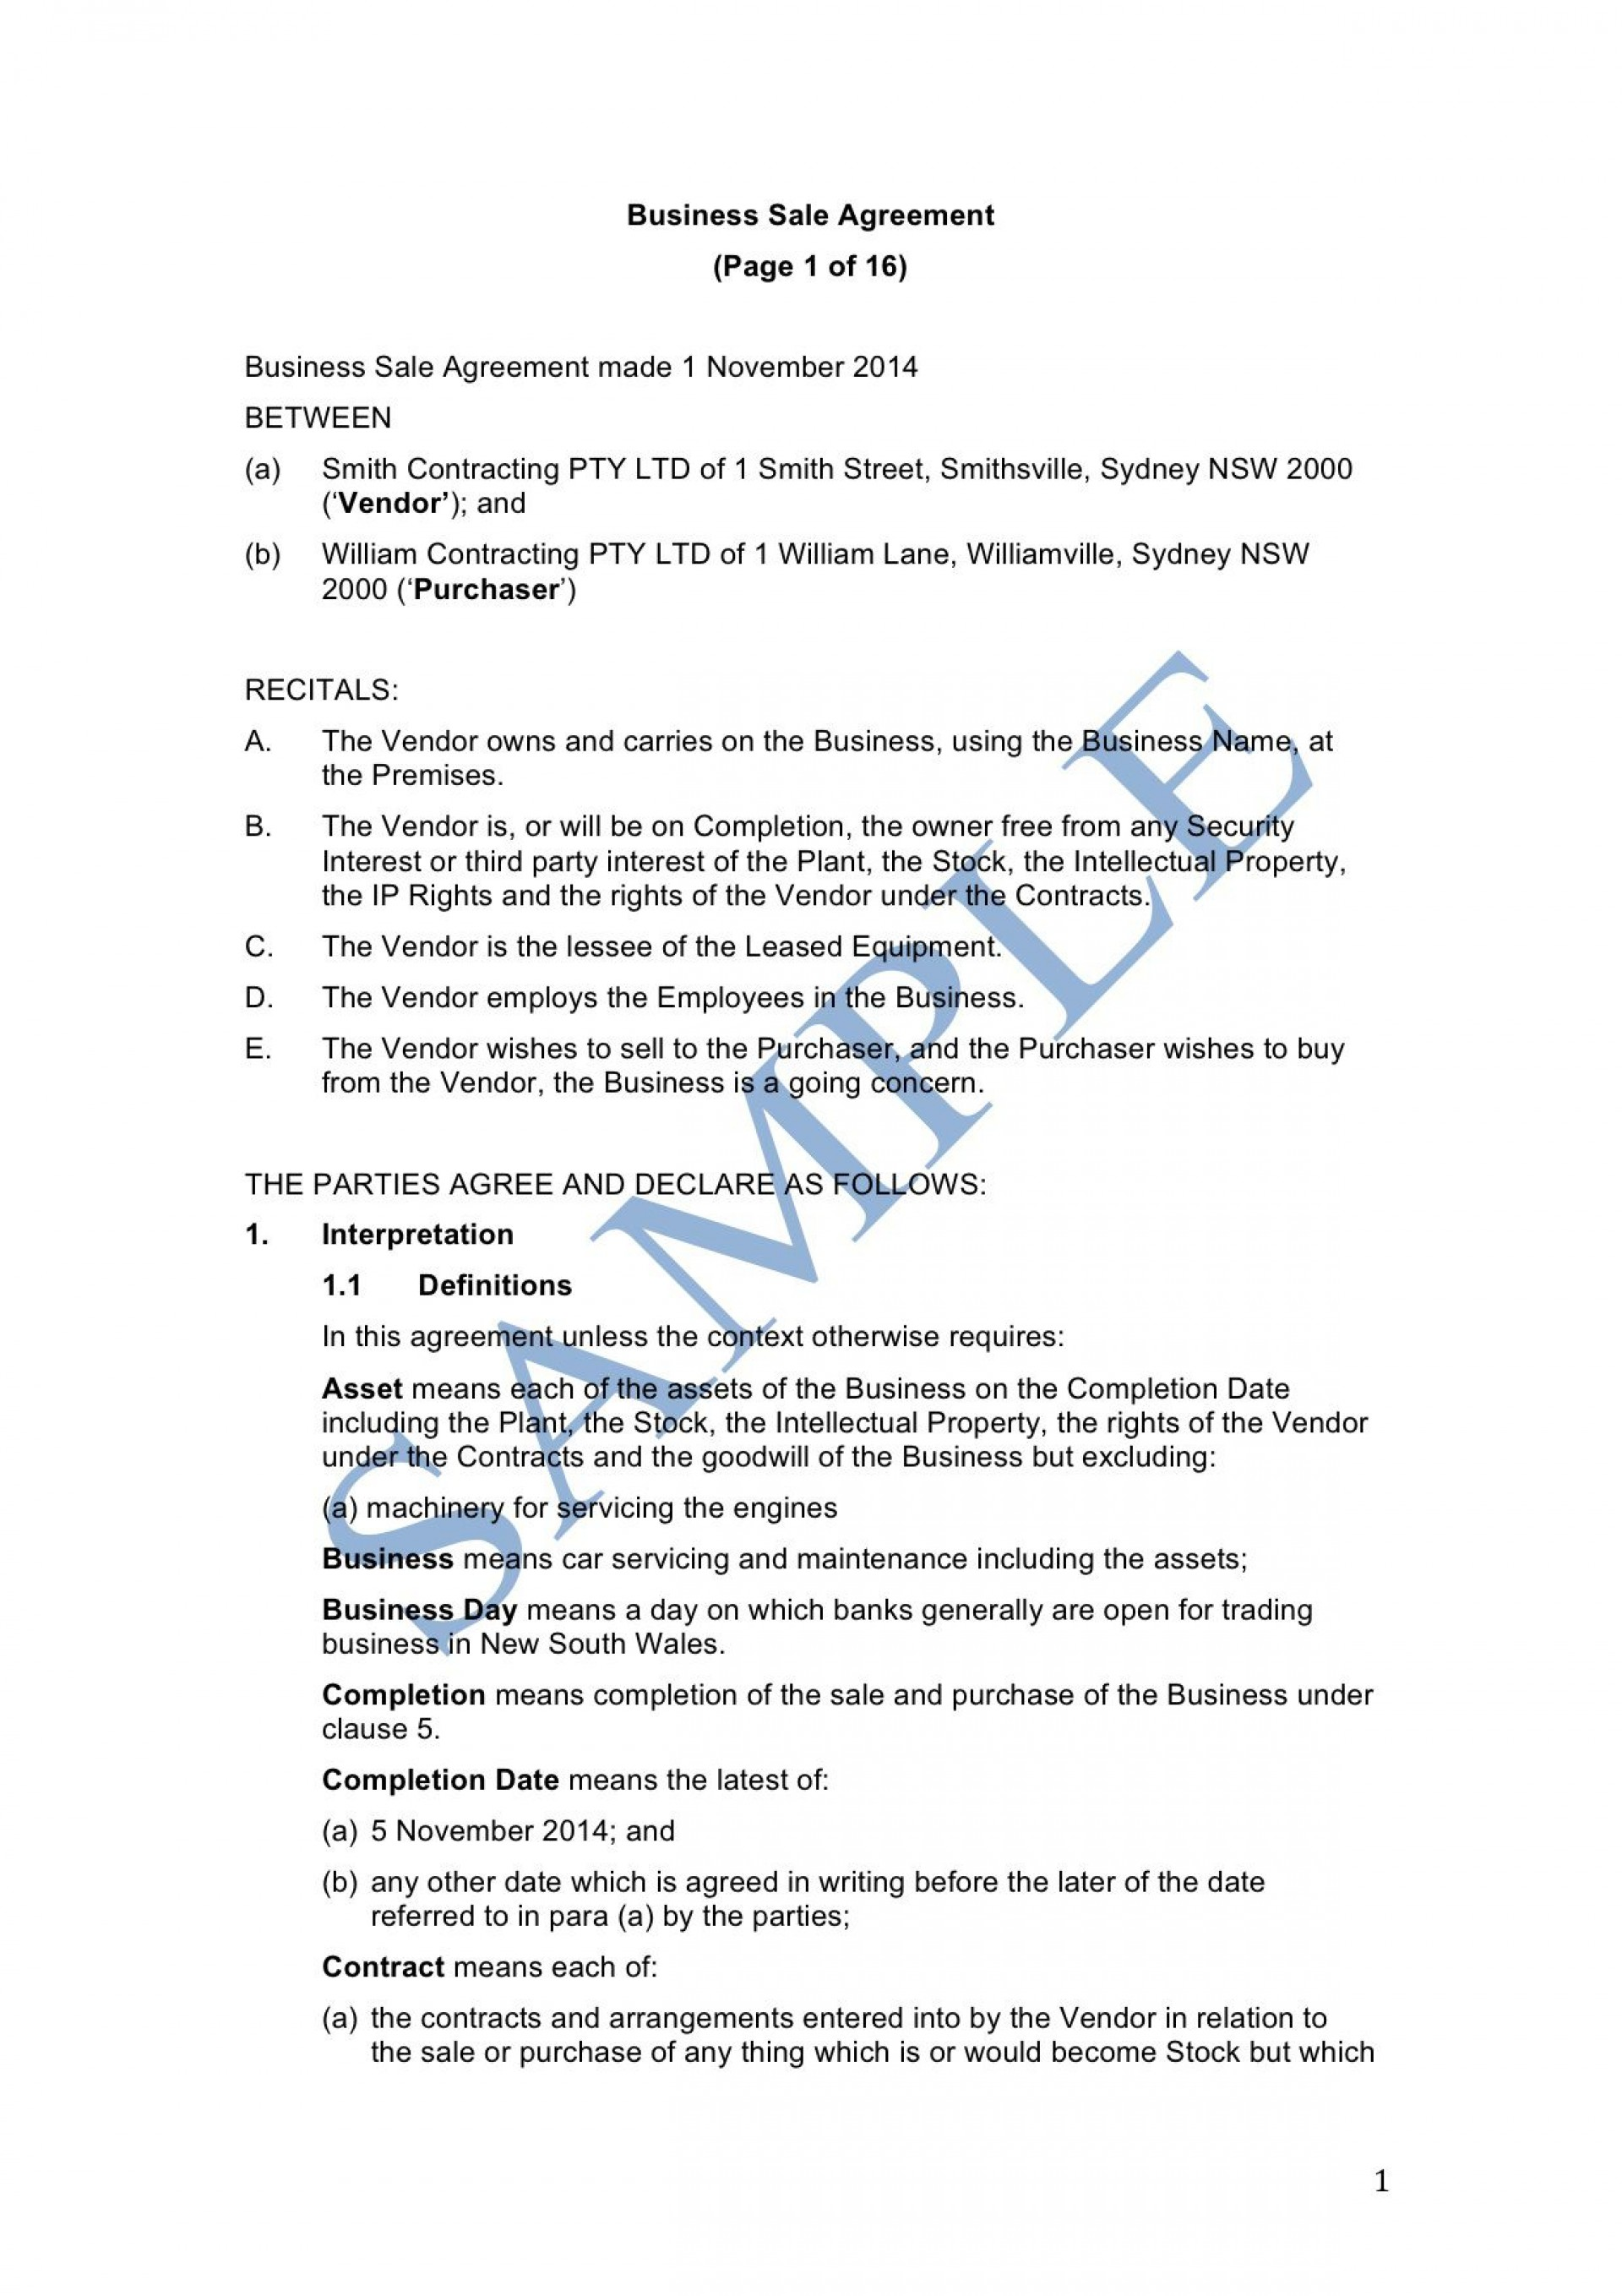 009 Beautiful Busines Purchase Agreement Template Inspiration  Free Uk Sale And Nz Buying Contract1920